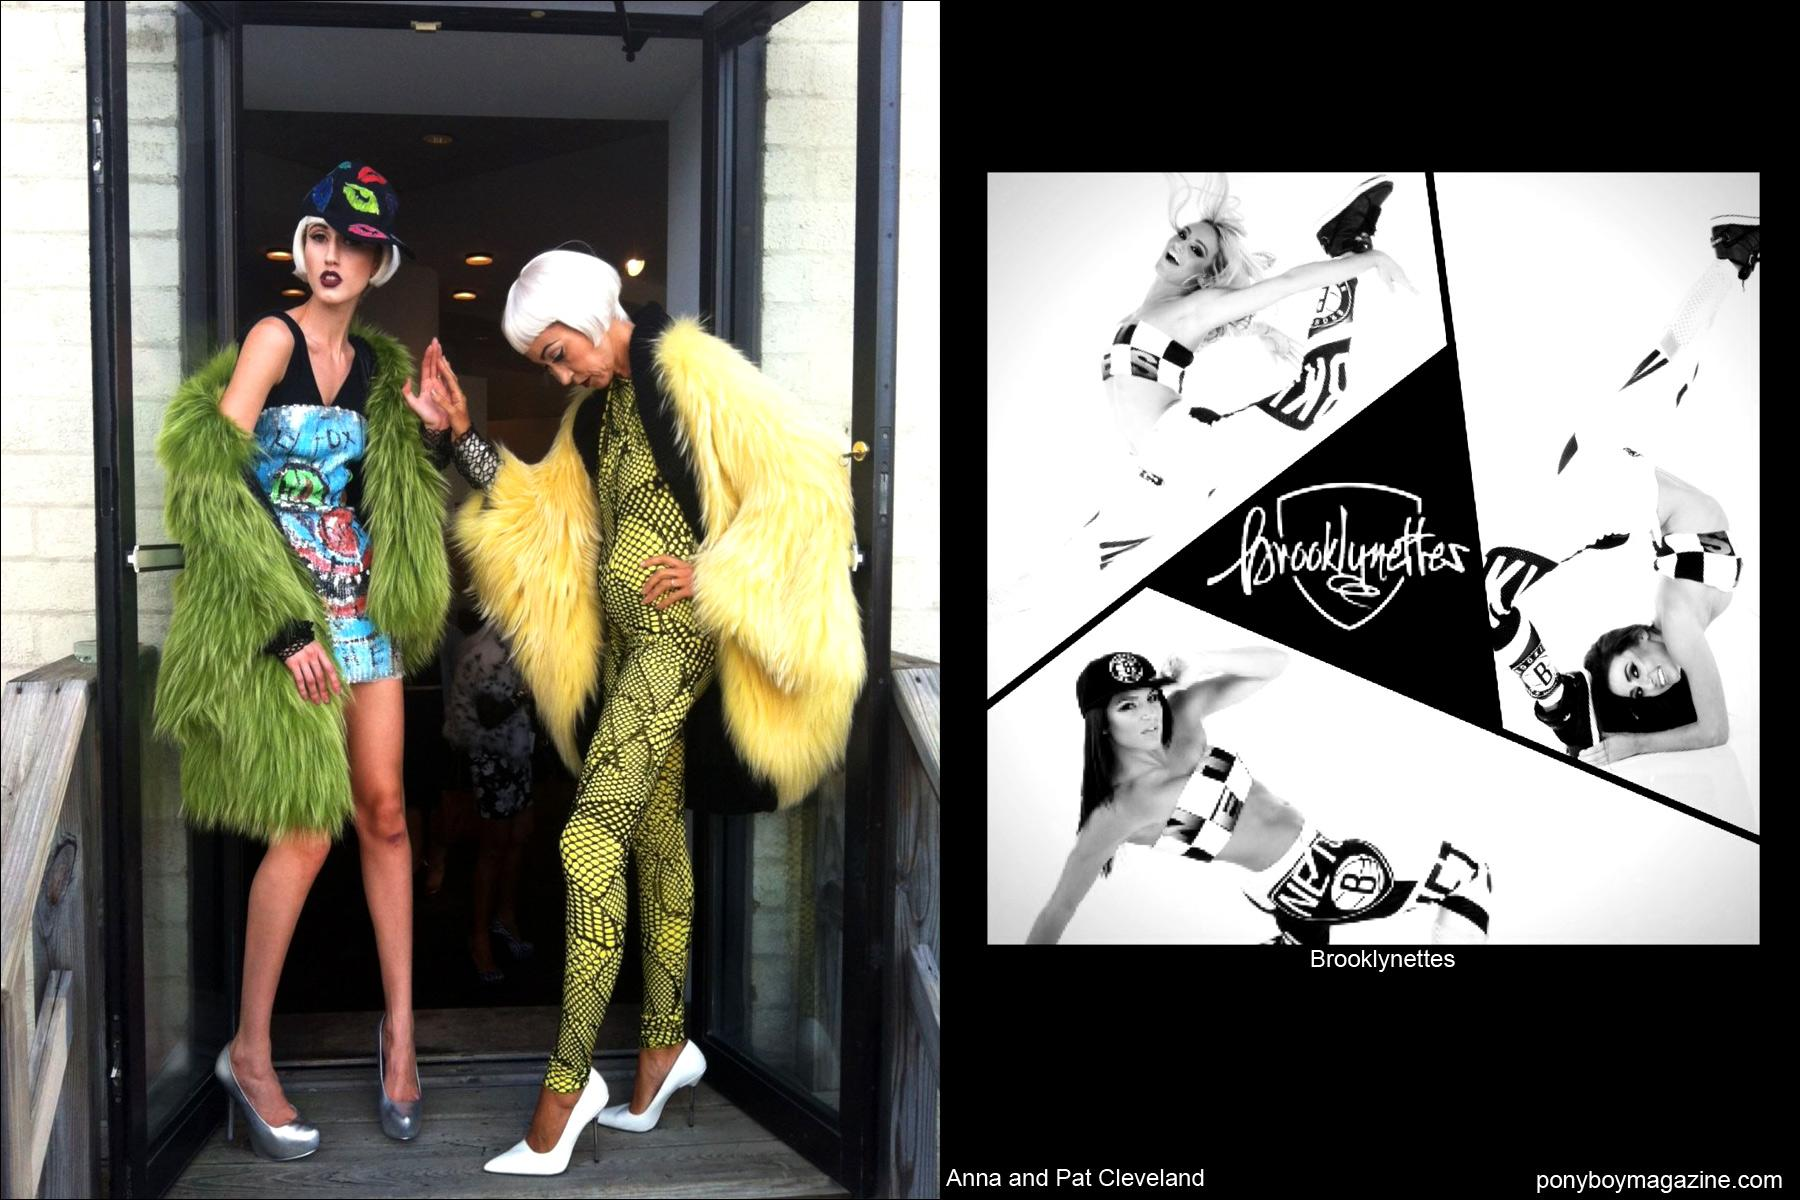 Mother and daughter models Anna and Pat Cleveland in David Dalrymple creations, as well as the Brooklynettes. Ponyboy Magazine.